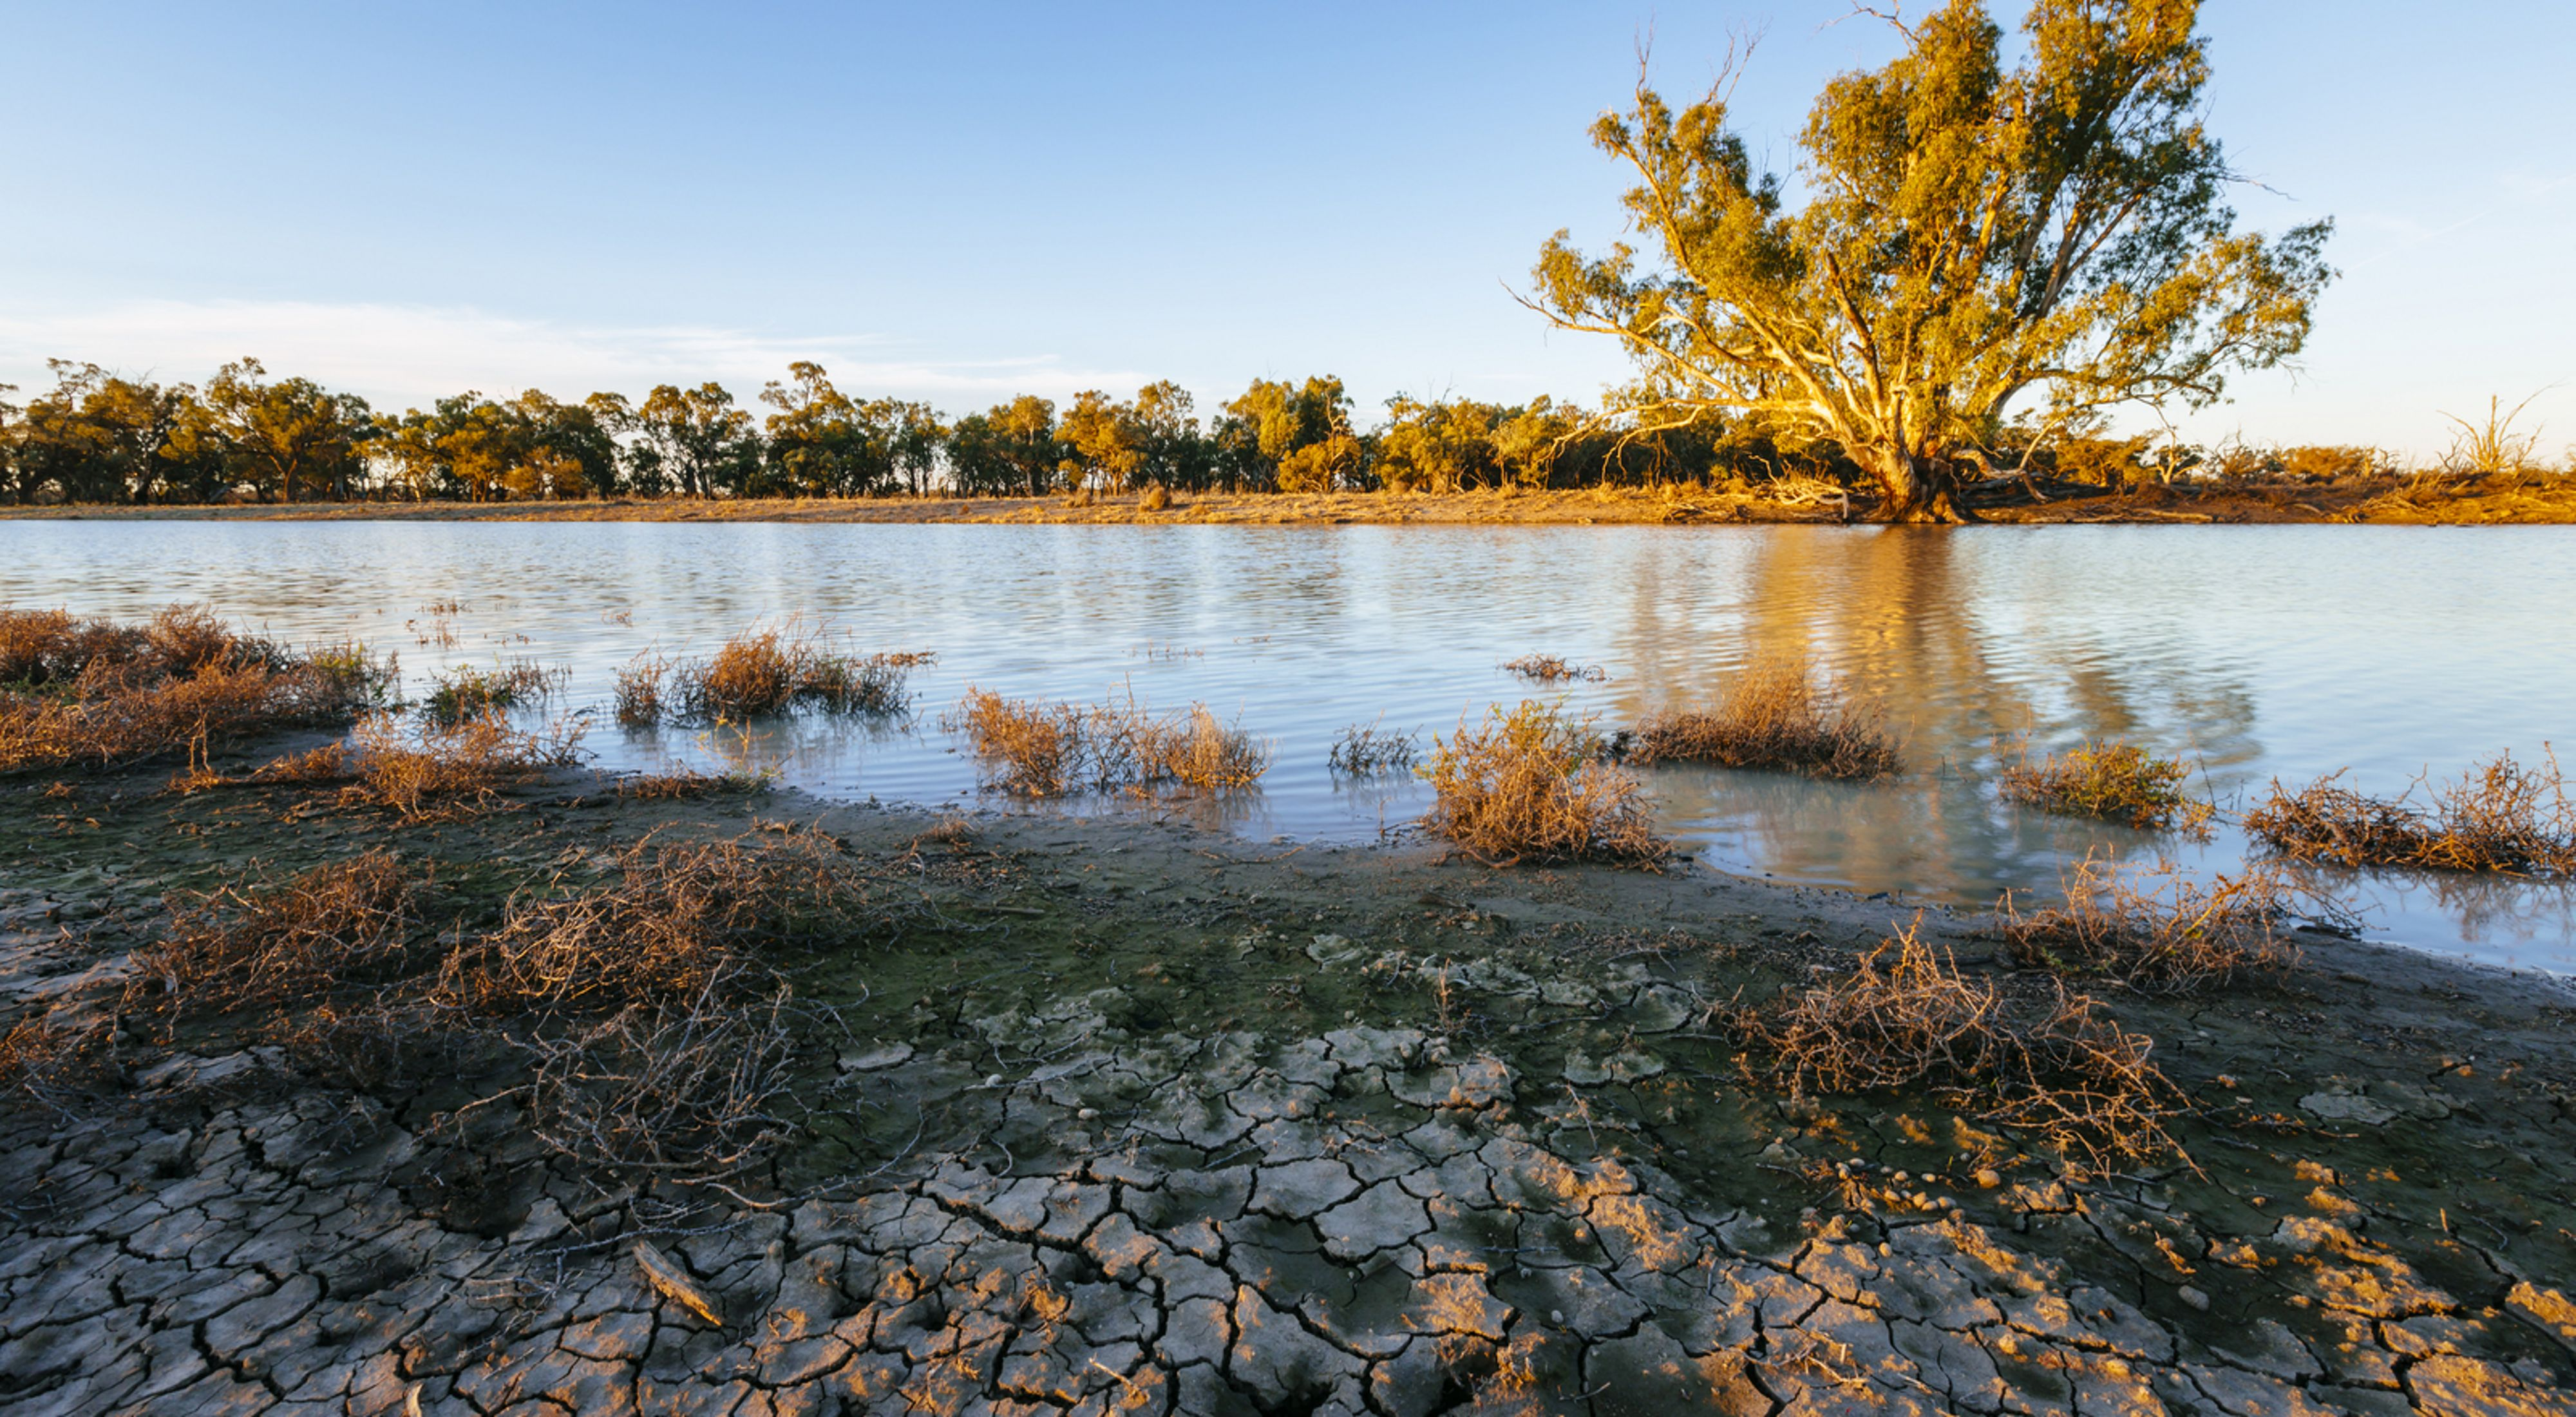 A Red Gum tree receives much needed moisture from the water transfer into a previously dry watercourse in the Carrs, Capitts and Bunberoo (CCB) Creeks system.